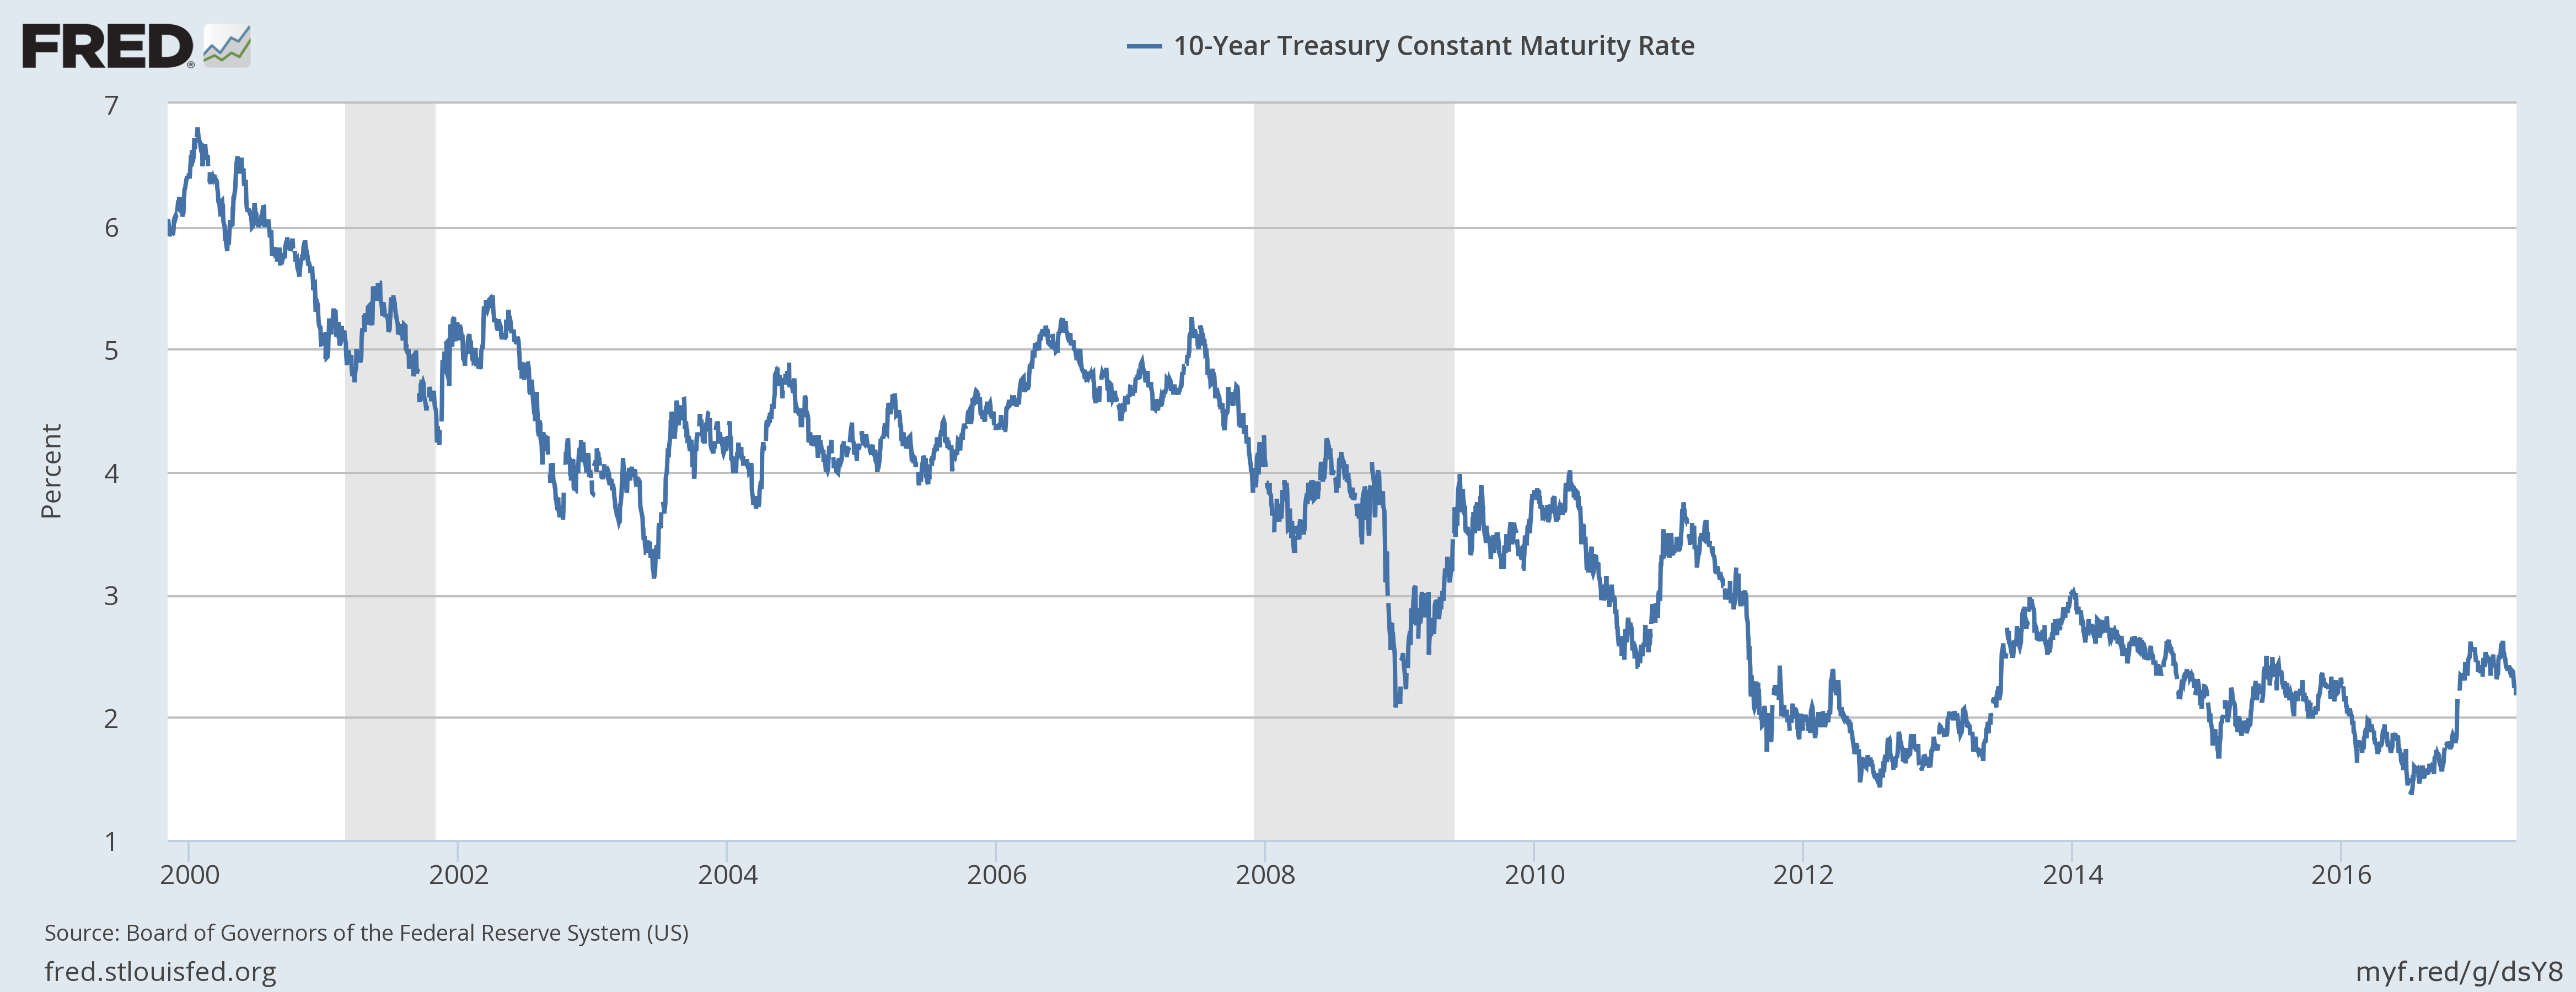 10-Year Treasury Constant Maturity Rate, 2000 - 2017